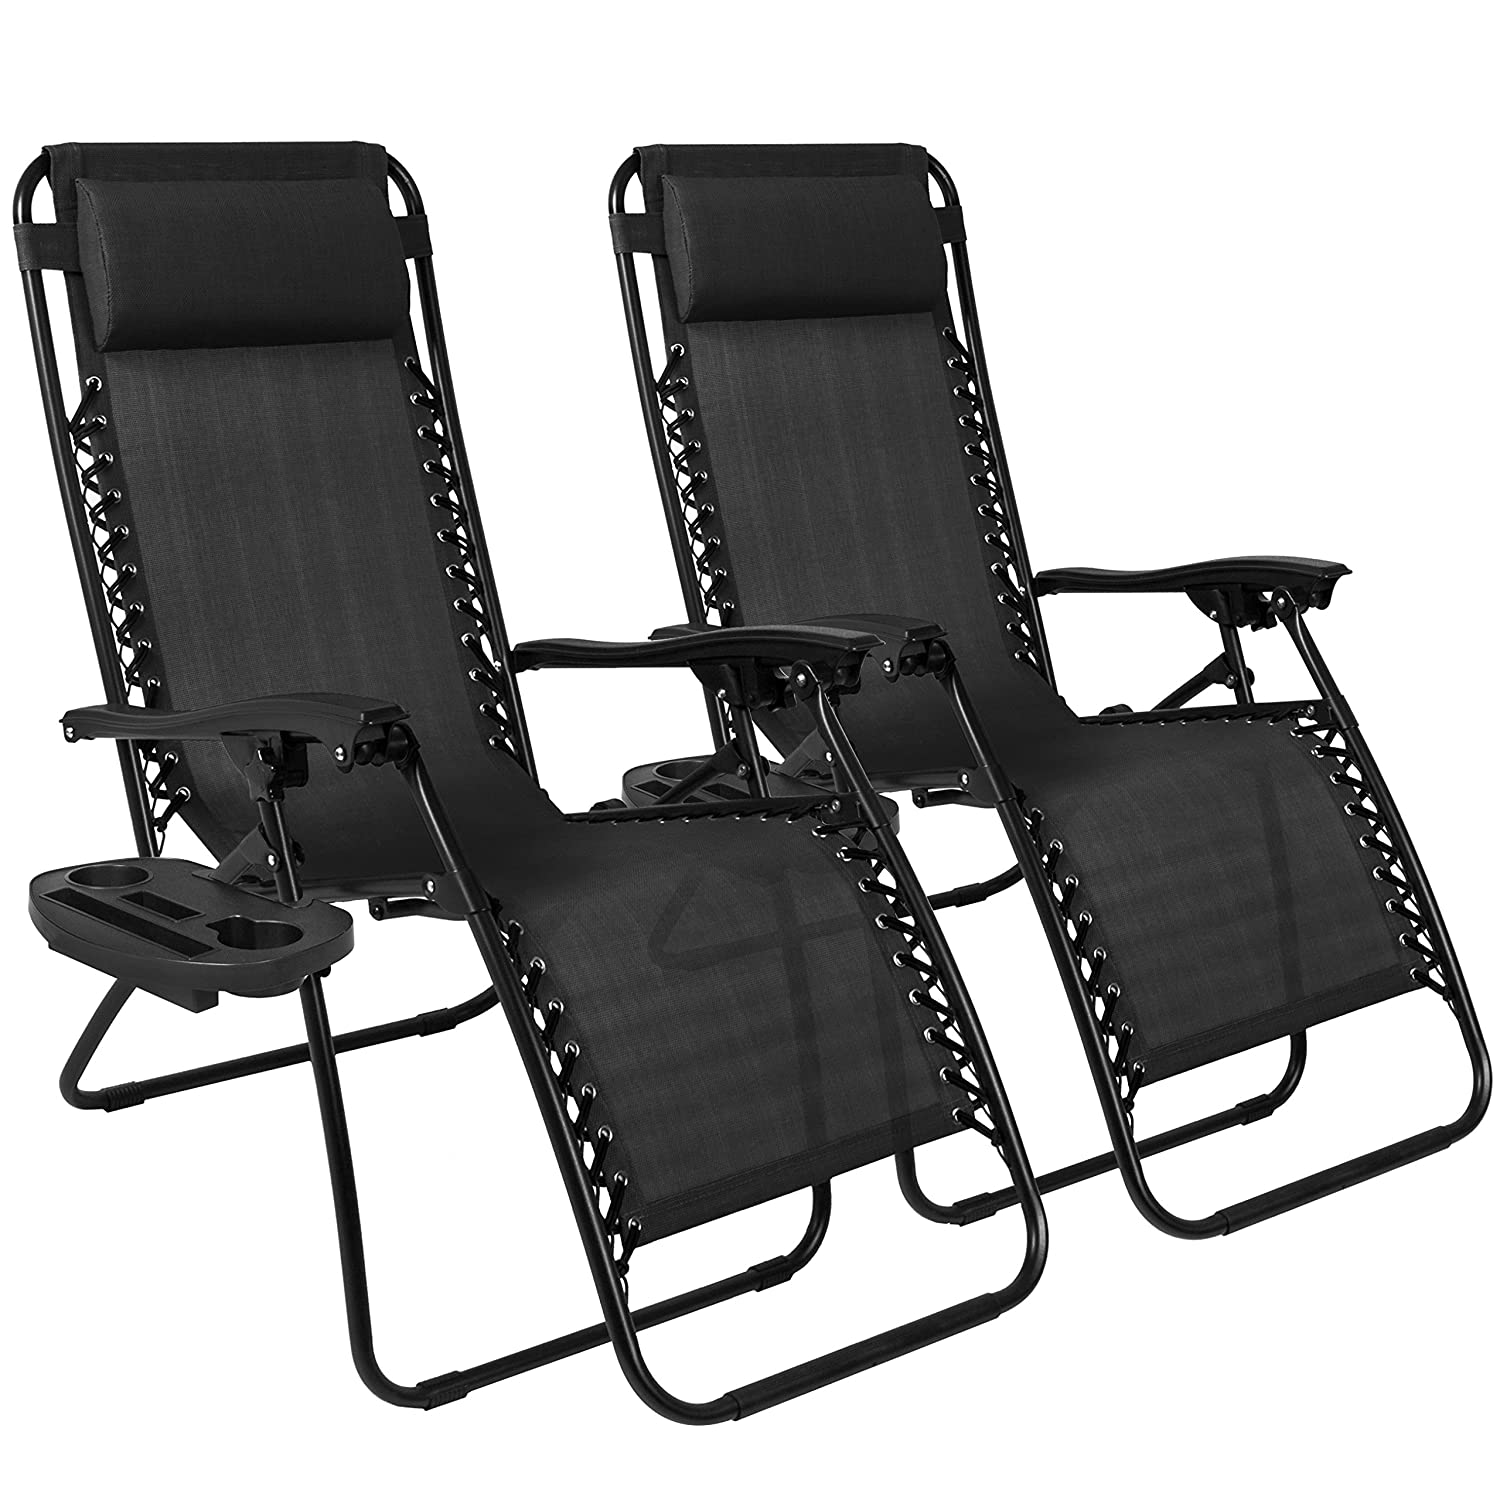 Amazon.com : Best Choice Products Zero Gravity Chairs Case Of (2) Black  Lounge Patio Chairs Outdoor Yard Beach New : Patio, Lawn U0026 Garden